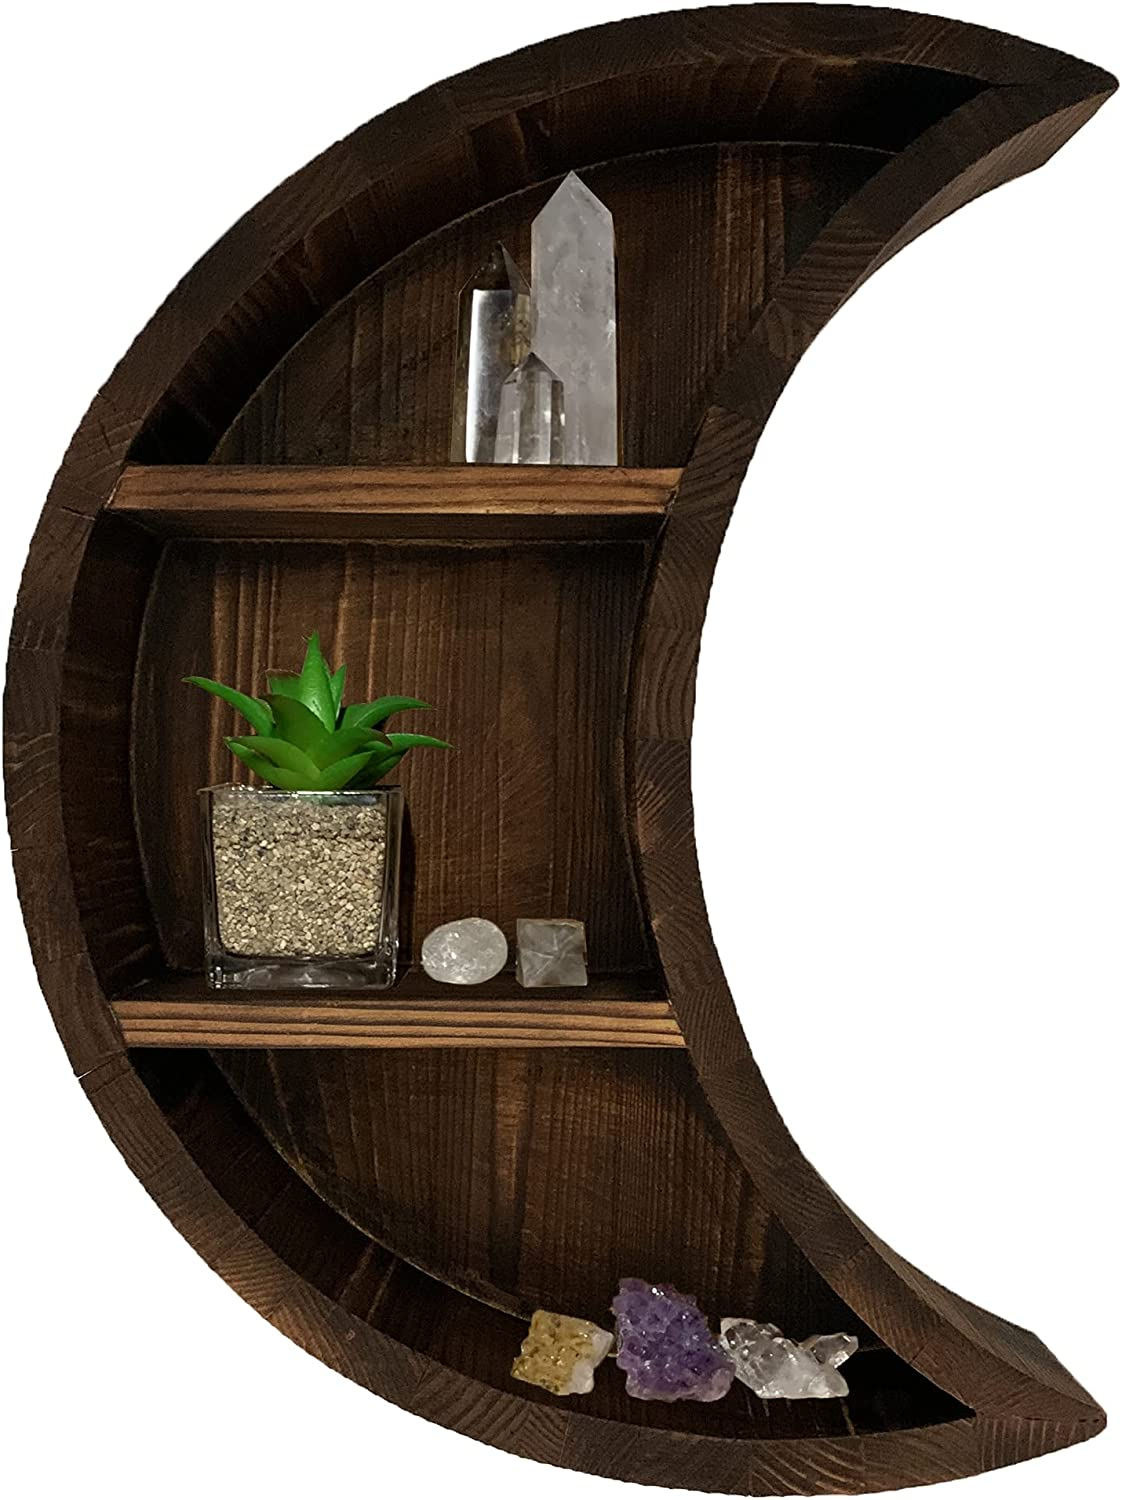 Rory's Creative Designs Moon Shelf - Solid Pine Wood Floating Hanging Storage Wall Decor for The Home Bedroom Living Room Kitchen - Wooden Essential Oil or Crystal Display - 16.5